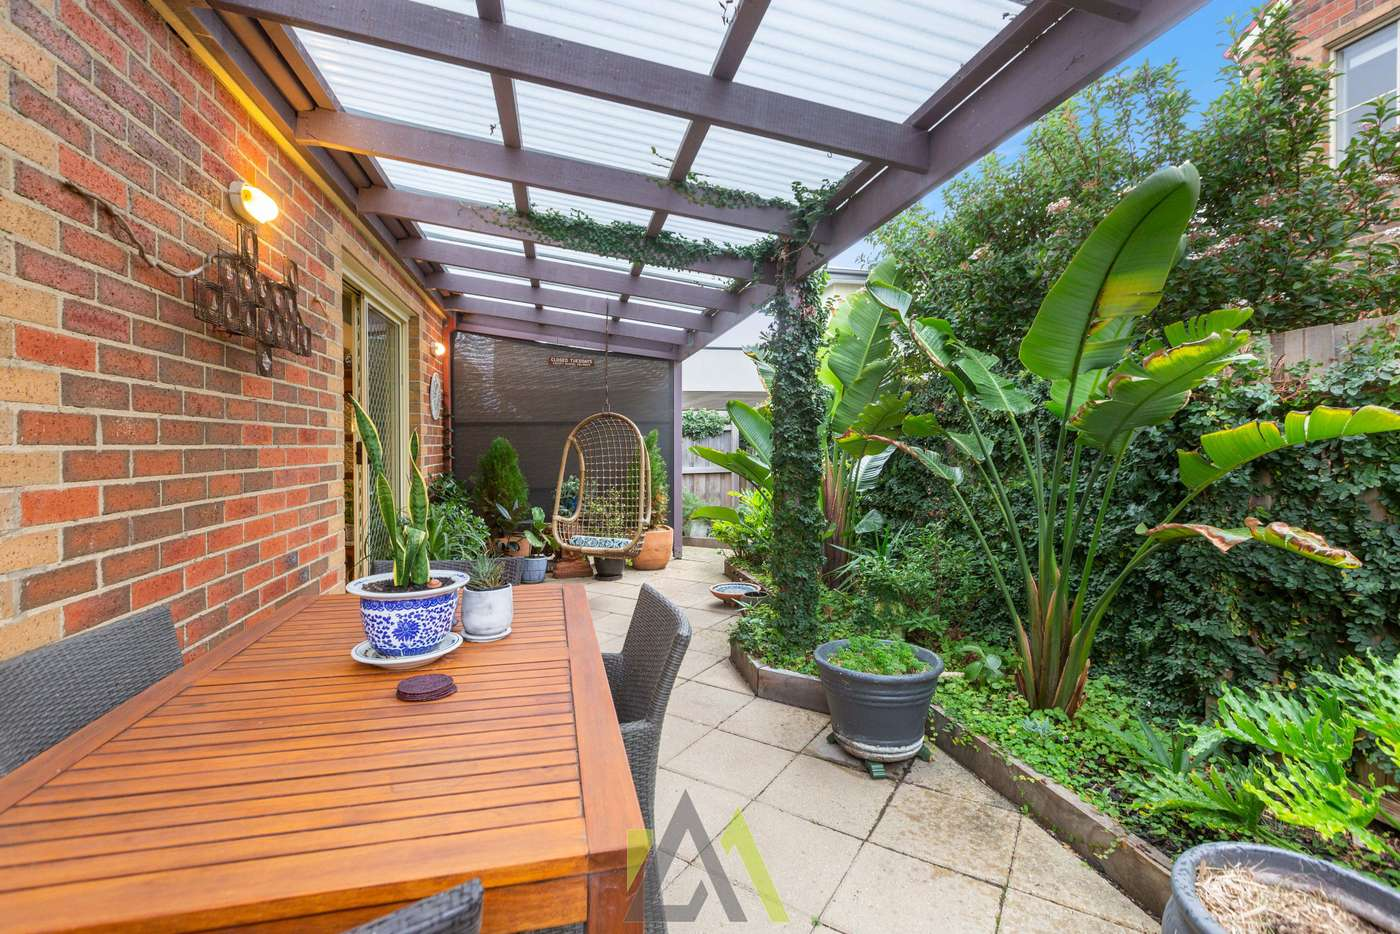 Main view of Homely unit listing, 2/3 Melville Avenue, Frankston VIC 3199